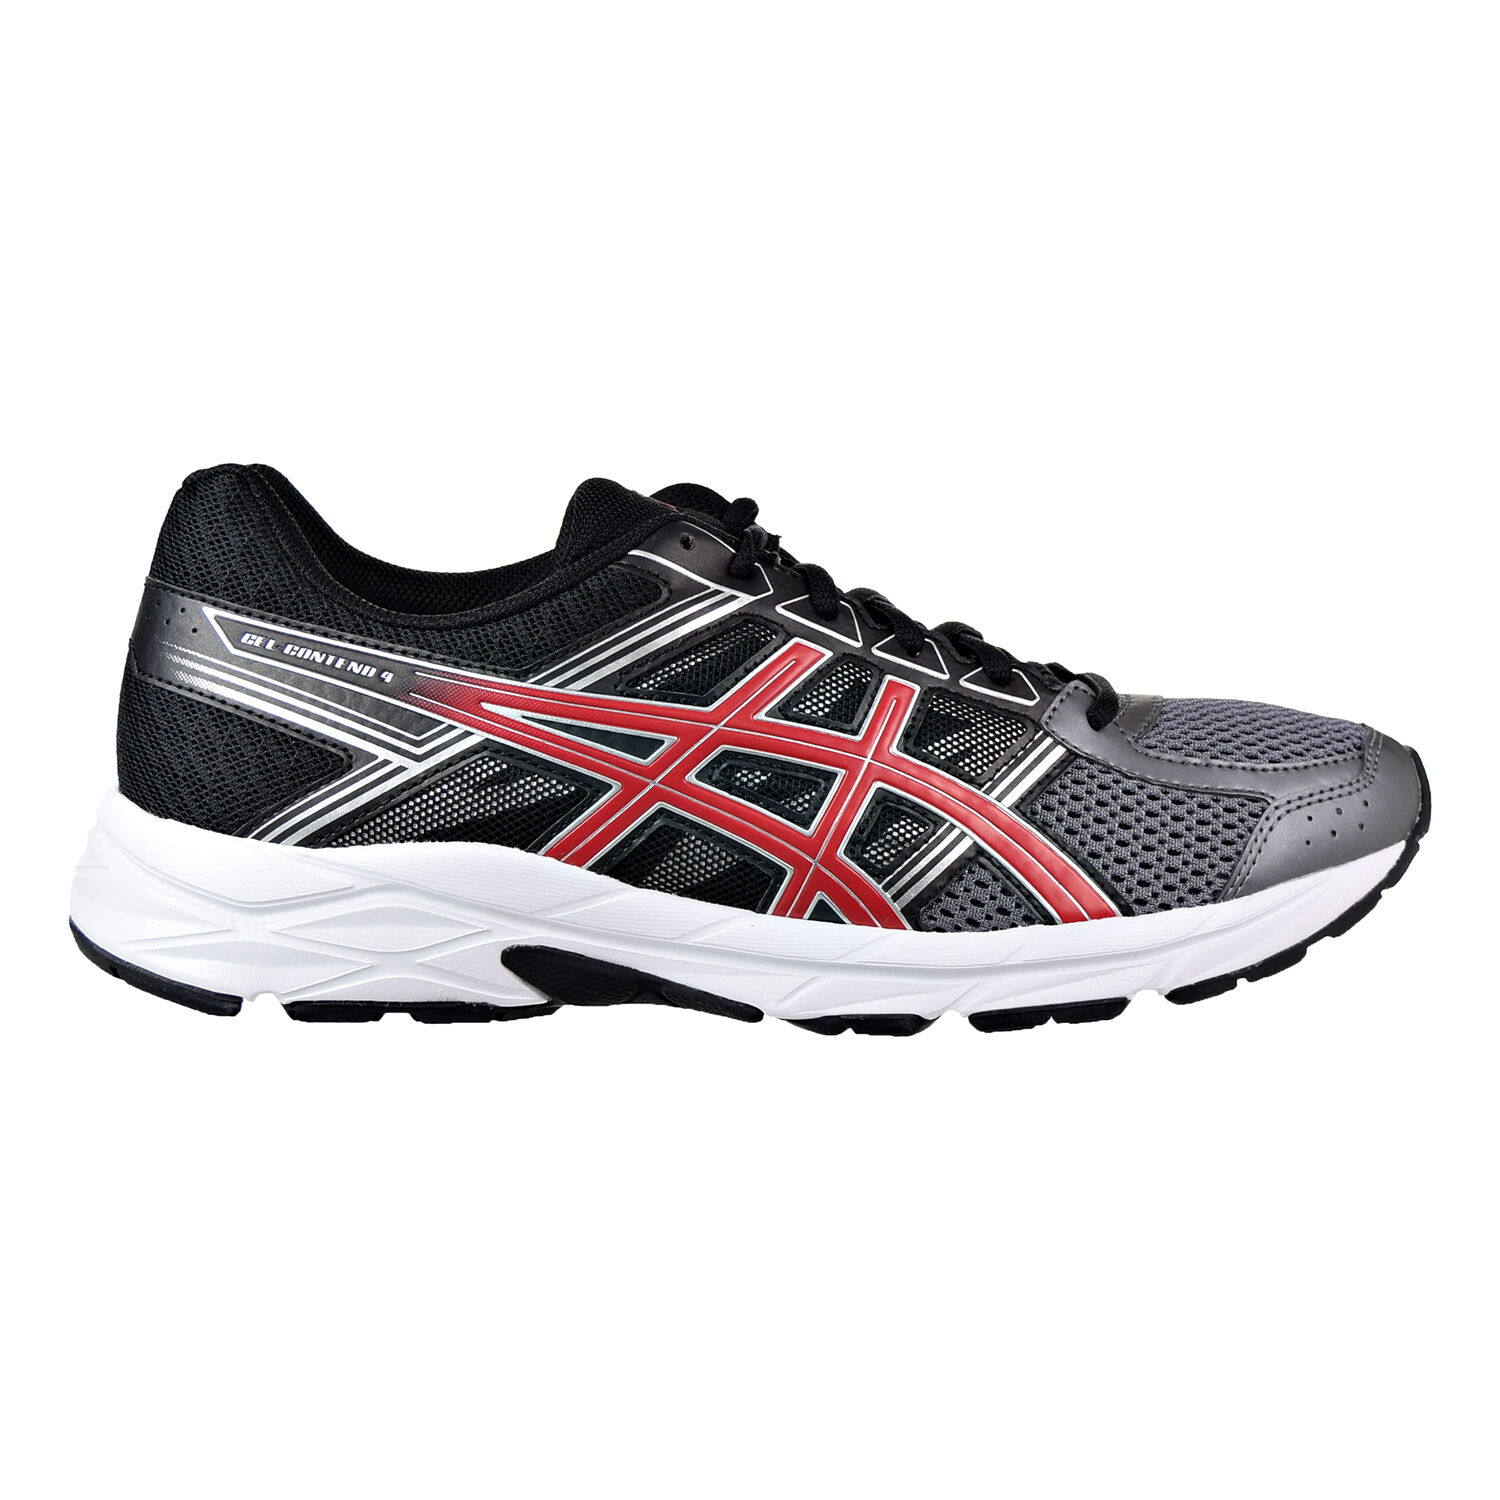 Asics Gel-Contend 4 Men's shoes Carbon Classic Red Black Black Black t715n-9723 cbf3a9